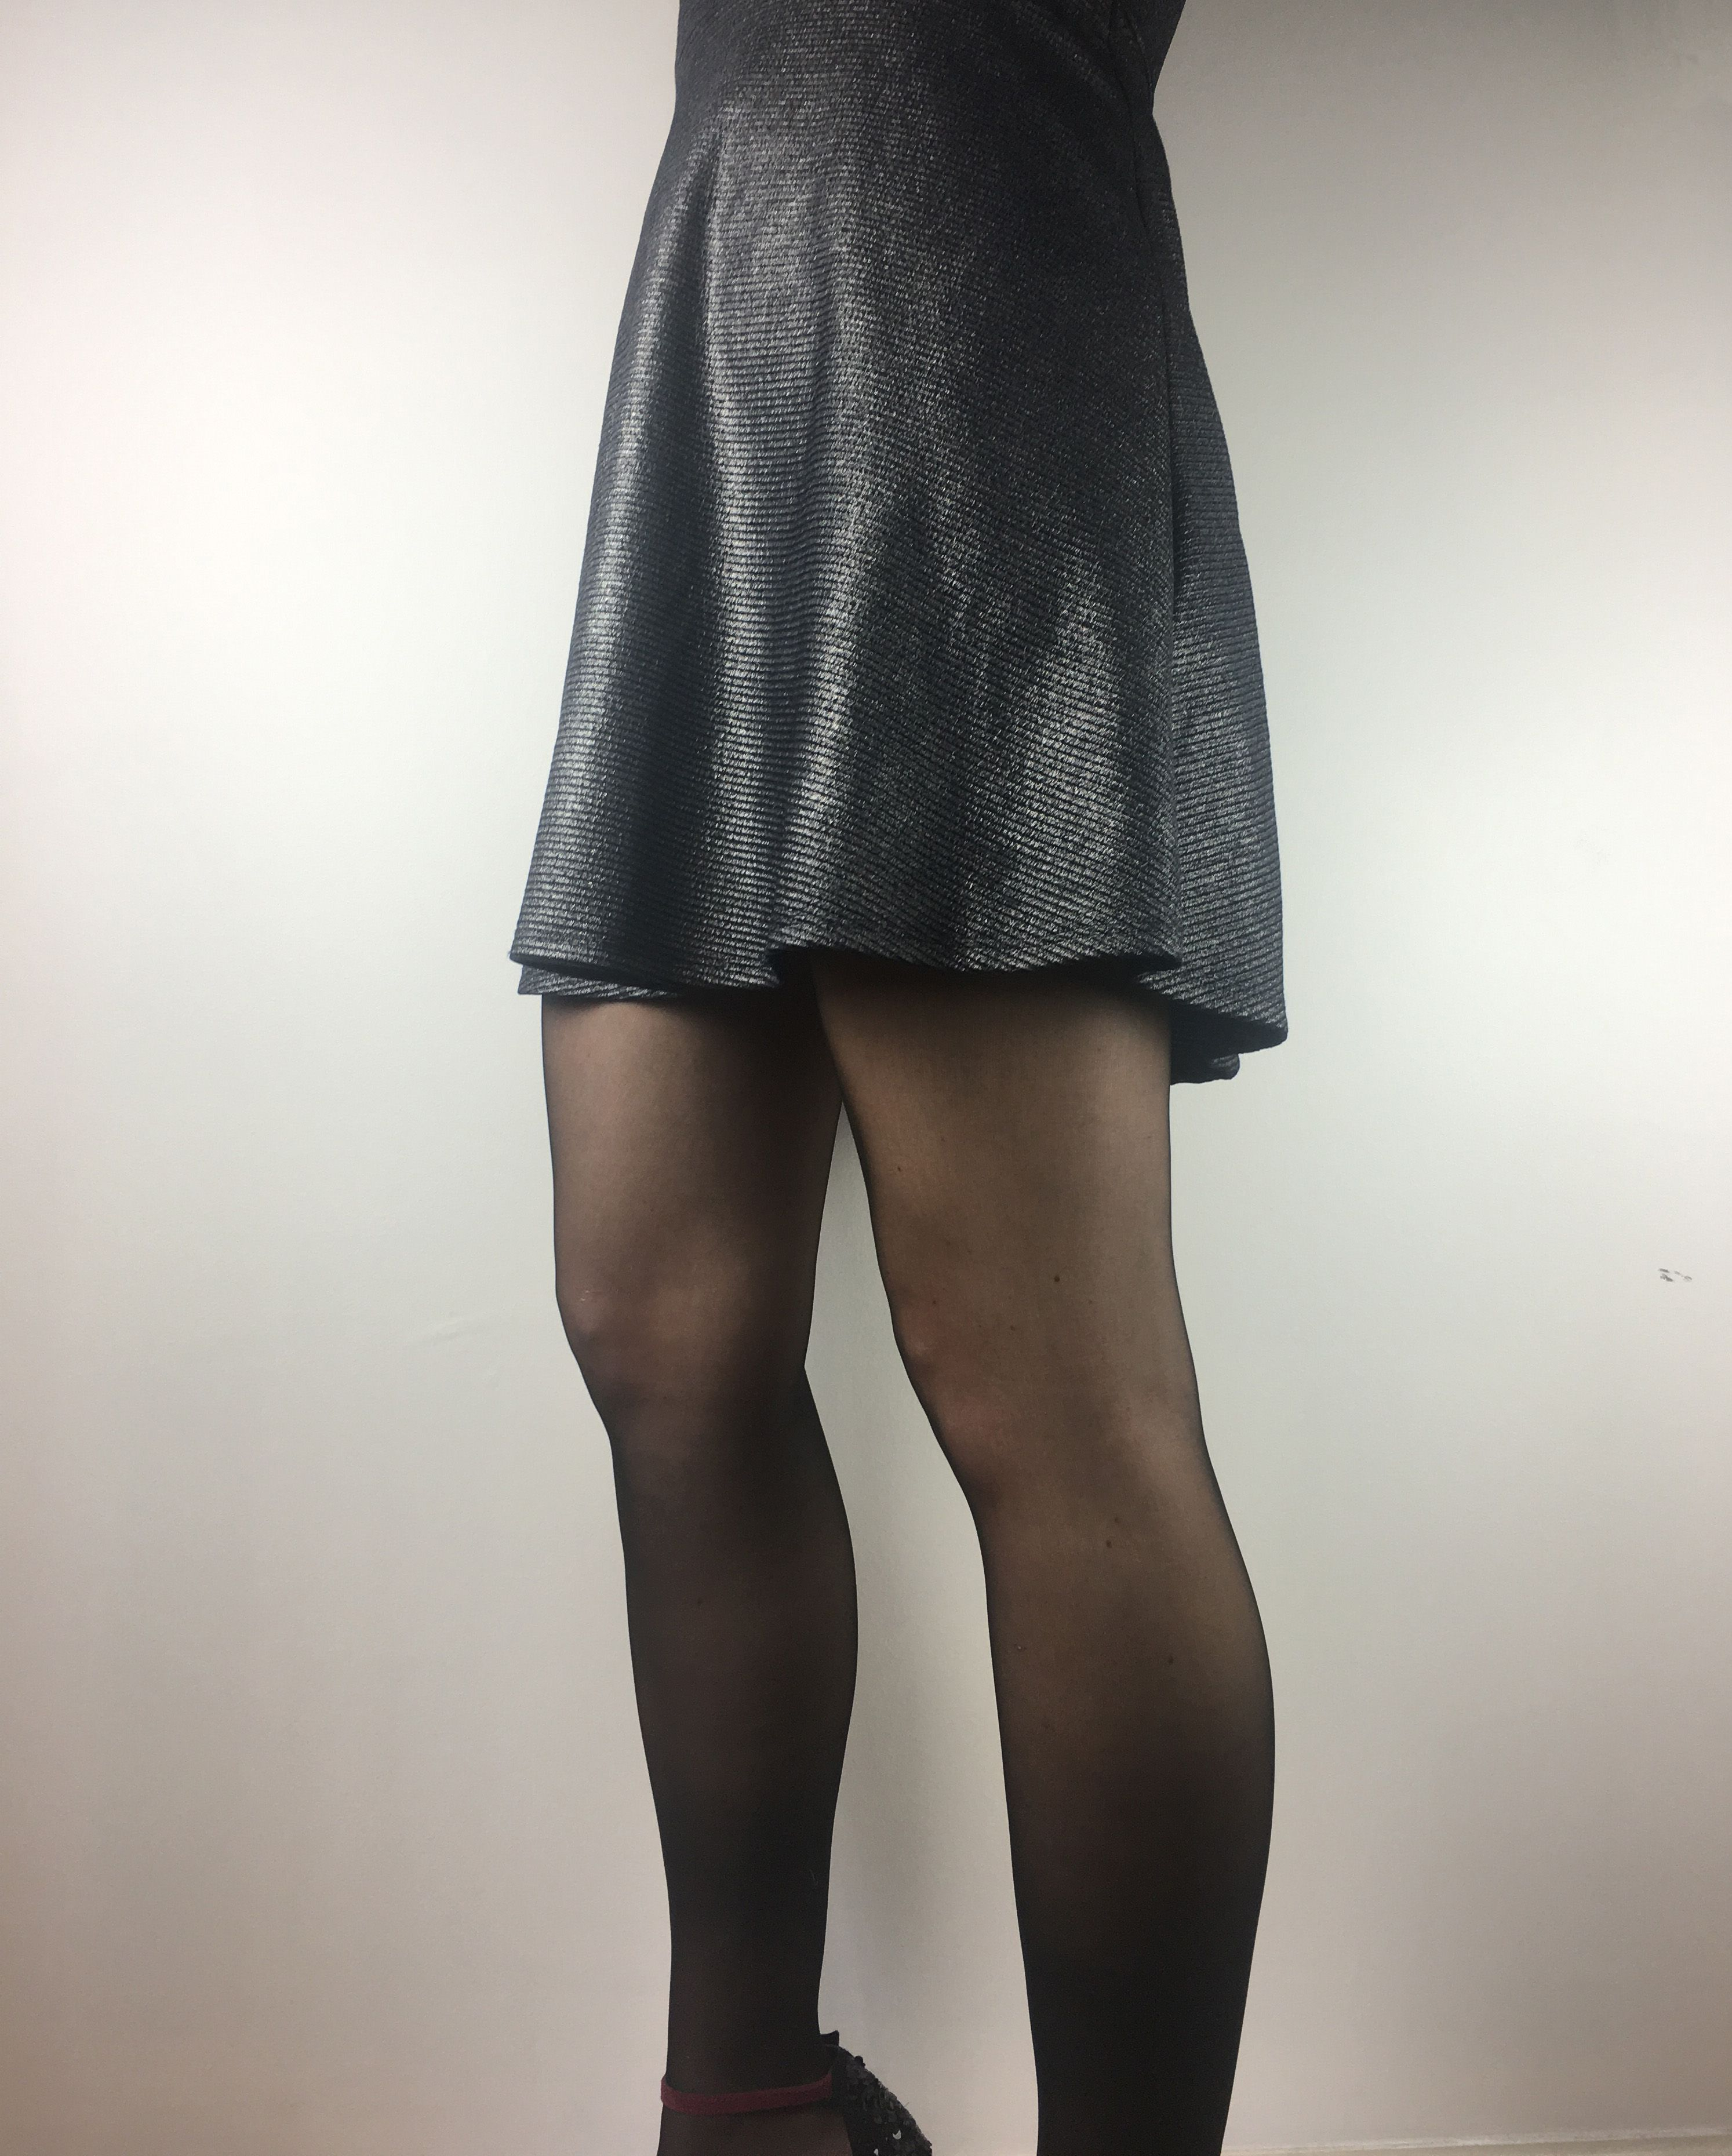 5 Ways To Wear Black Pantyhose For A Dressy Evening Look The Hipstik Style Black Pantyhose Pantyhose Outfits Wearing Black